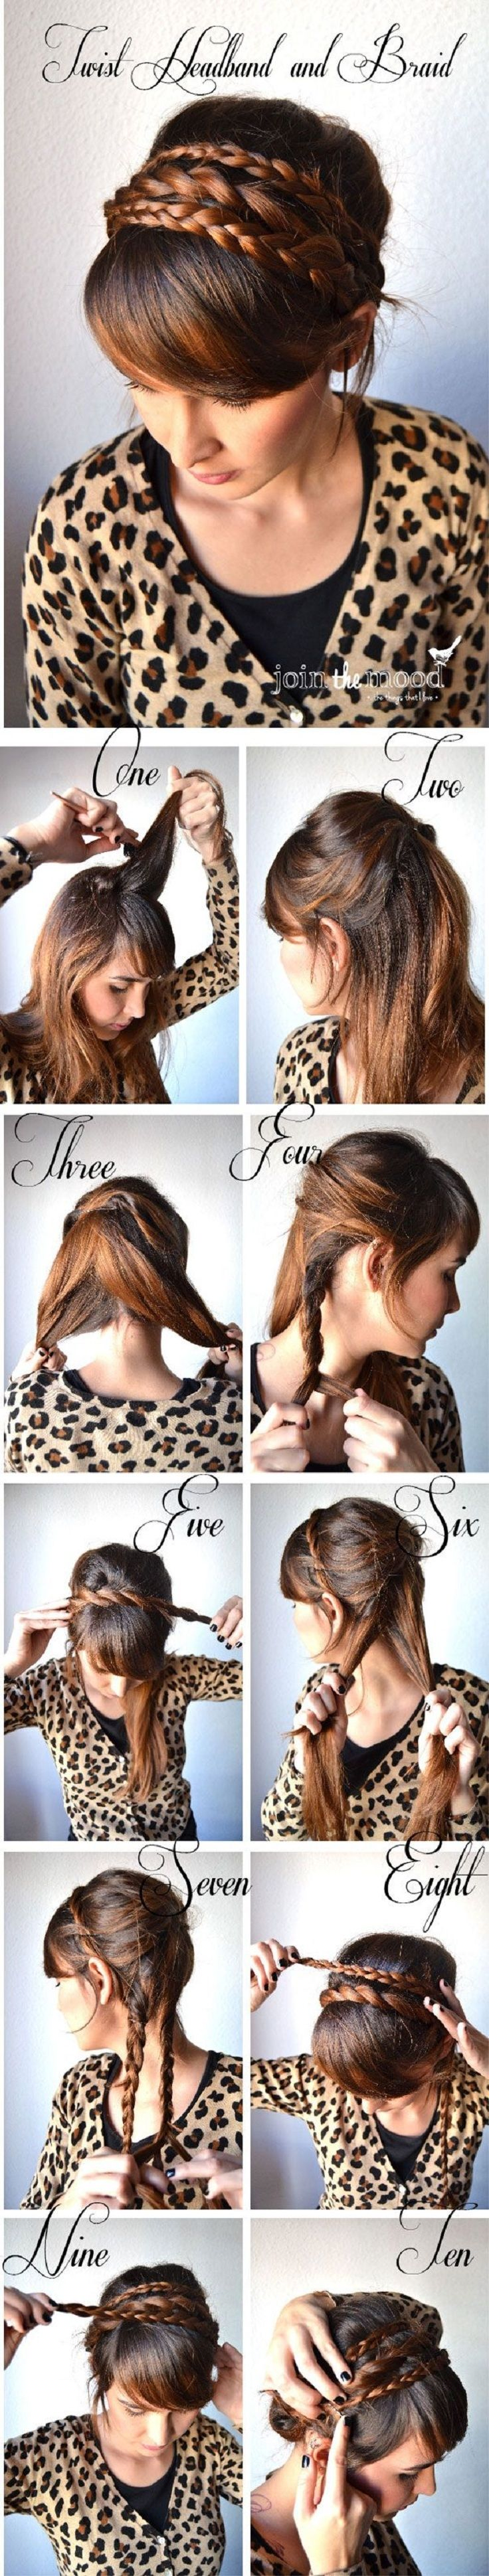 DIY Twist Headband And Braid Pictures, Photos, and Images for Facebook, Tumblr, Pinterest, and Twitter